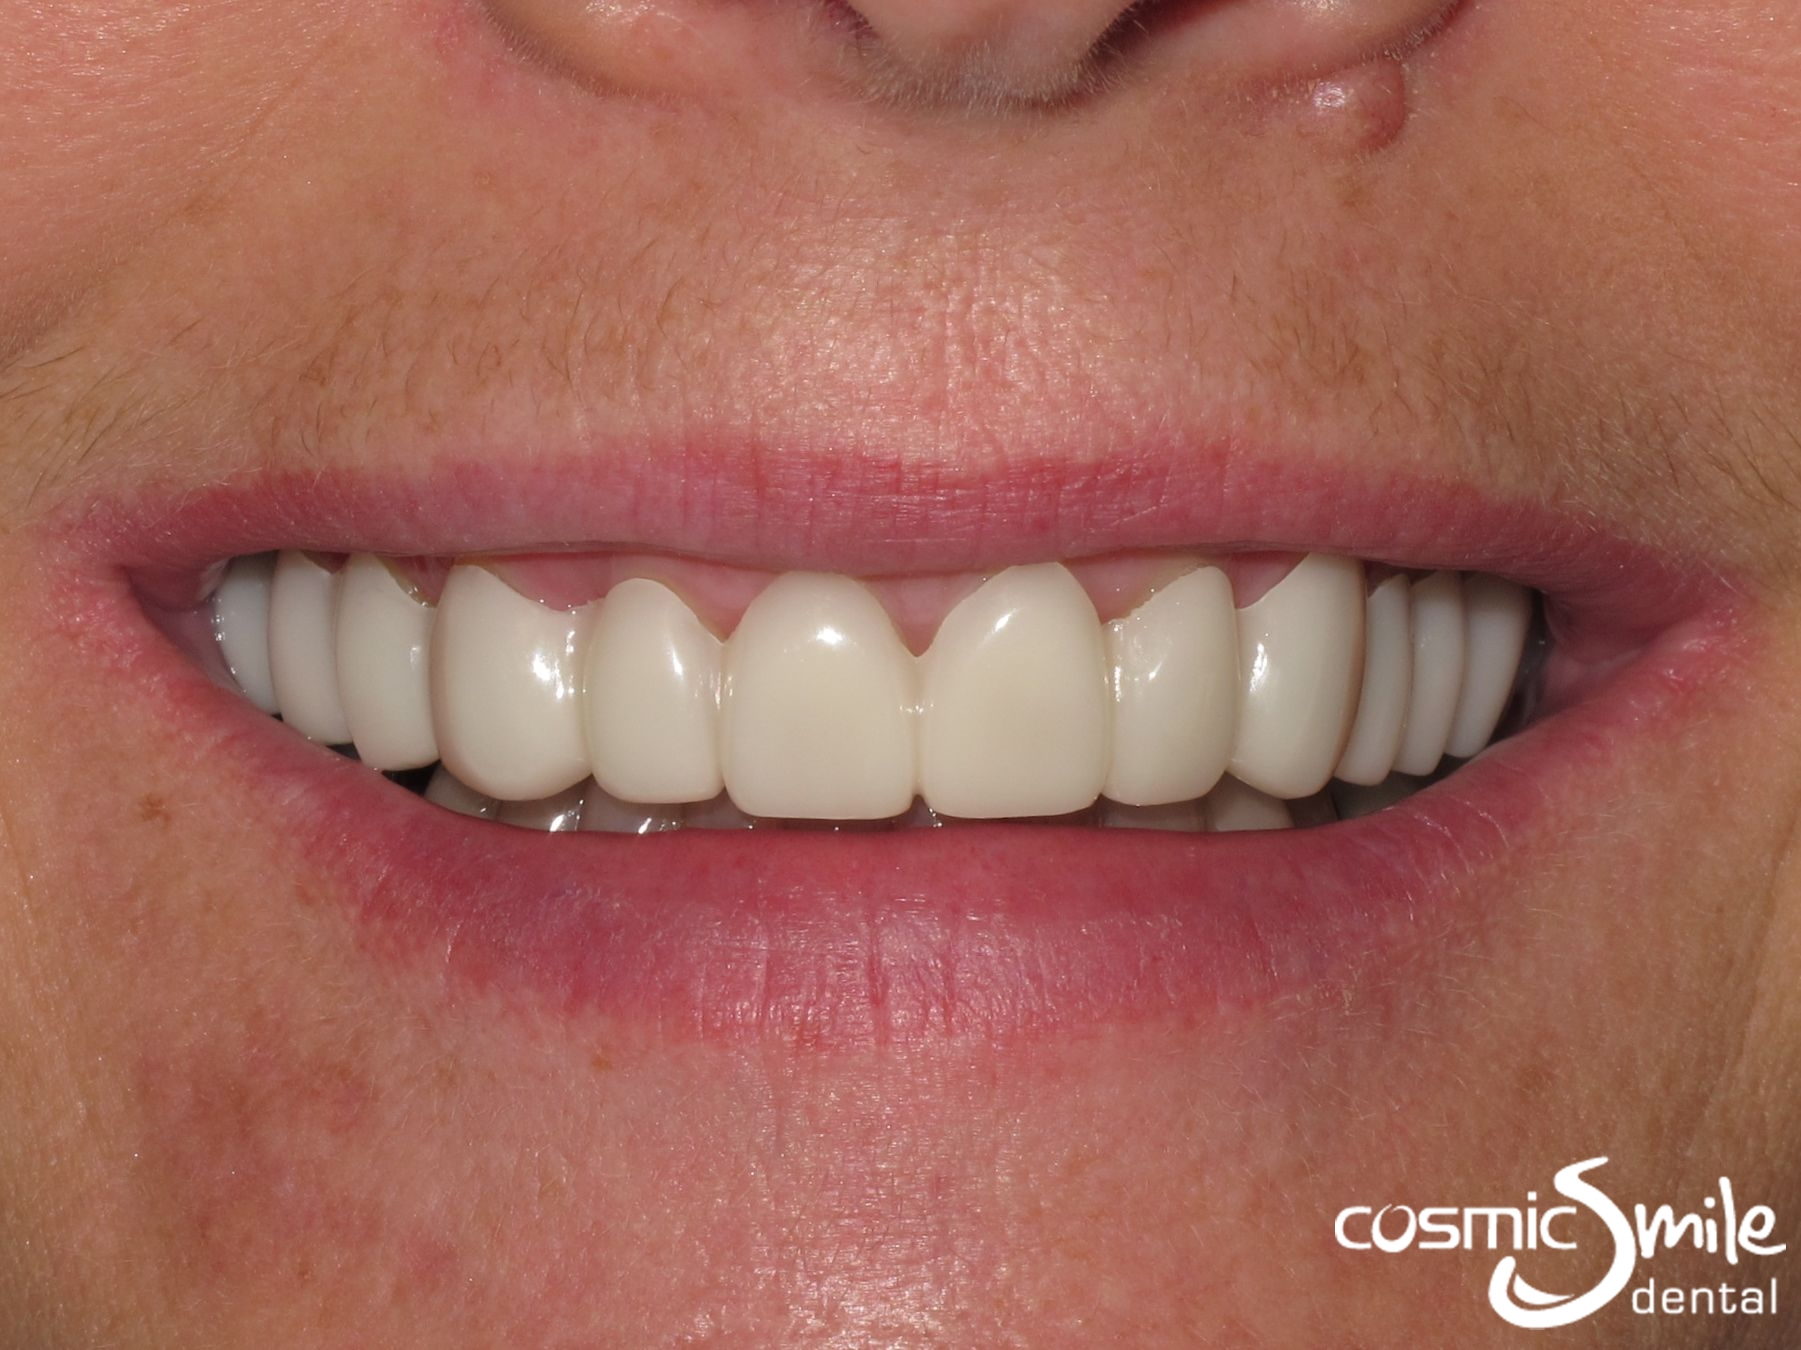 Snap on Smile Before and After - Cosmic Smile Dental